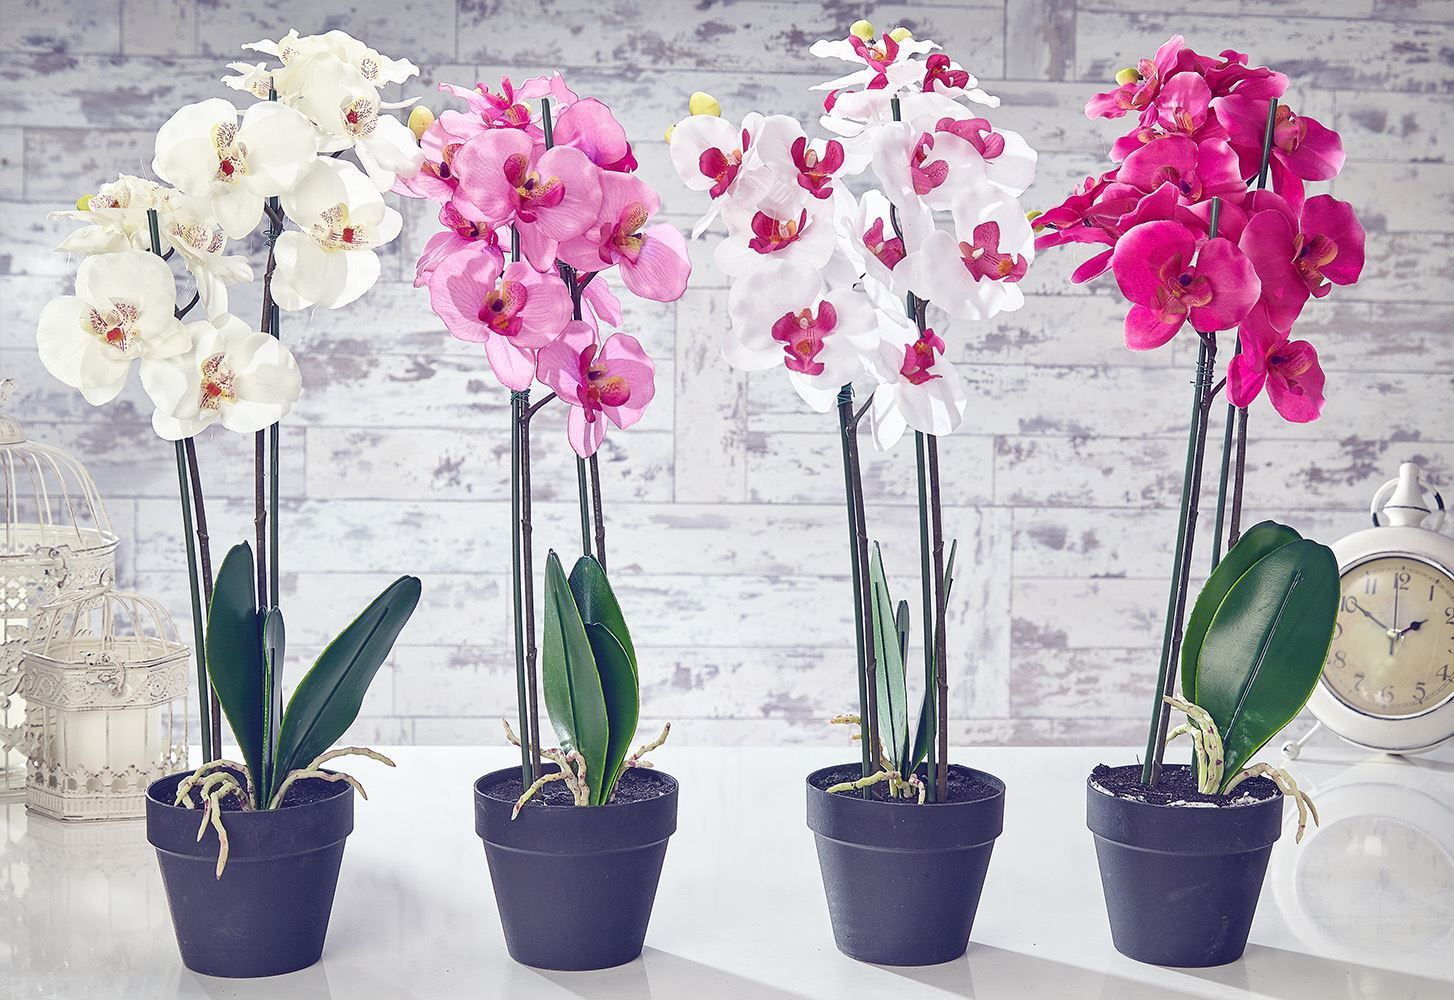 Artificial Orchid Flowers Plants in Pot Home Decor Garden